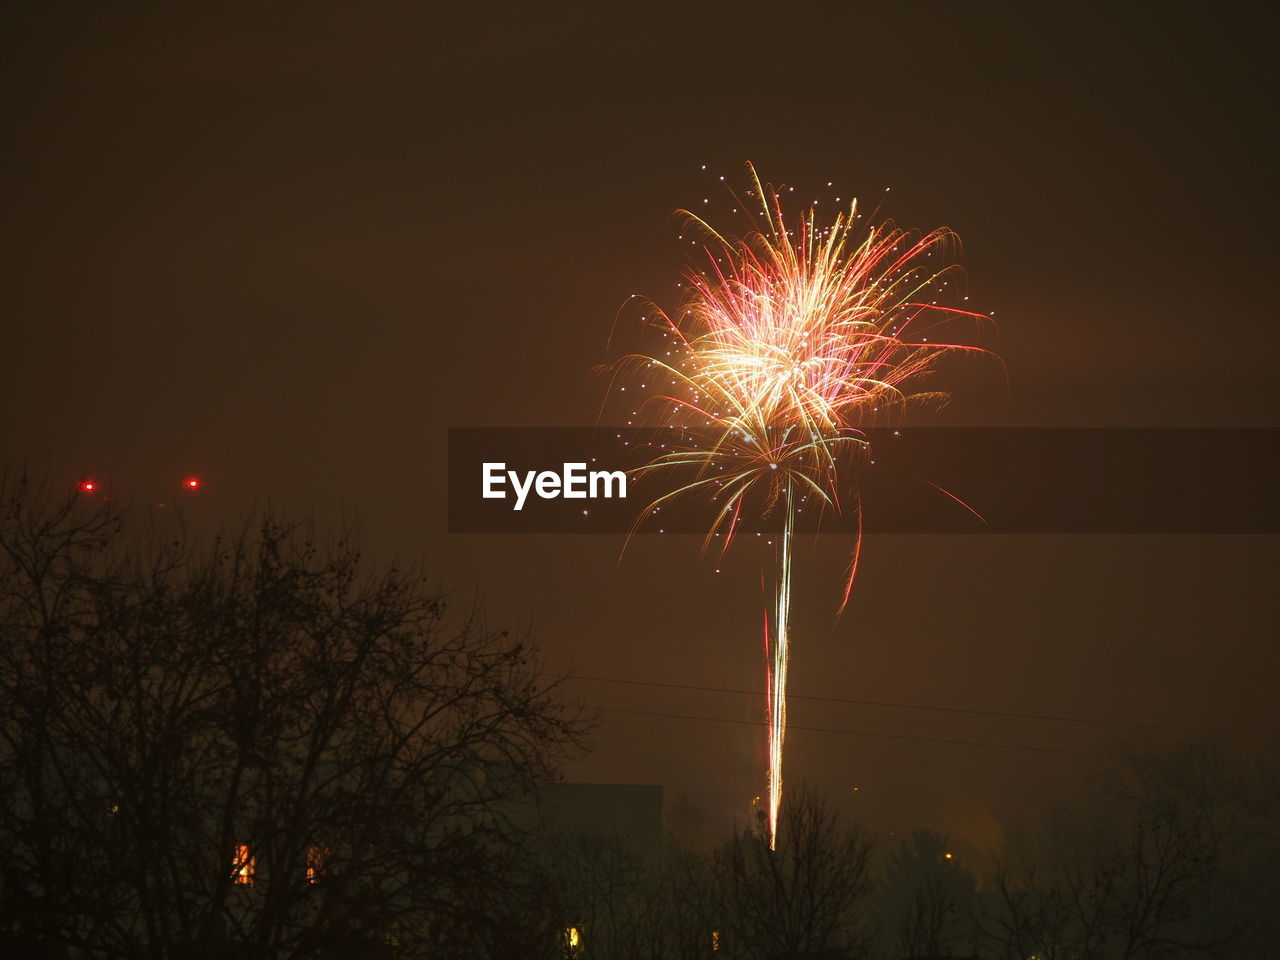 night, celebration, firework display, firework - man made object, illuminated, exploding, low angle view, long exposure, sky, event, no people, motion, outdoors, arts culture and entertainment, firework, tree